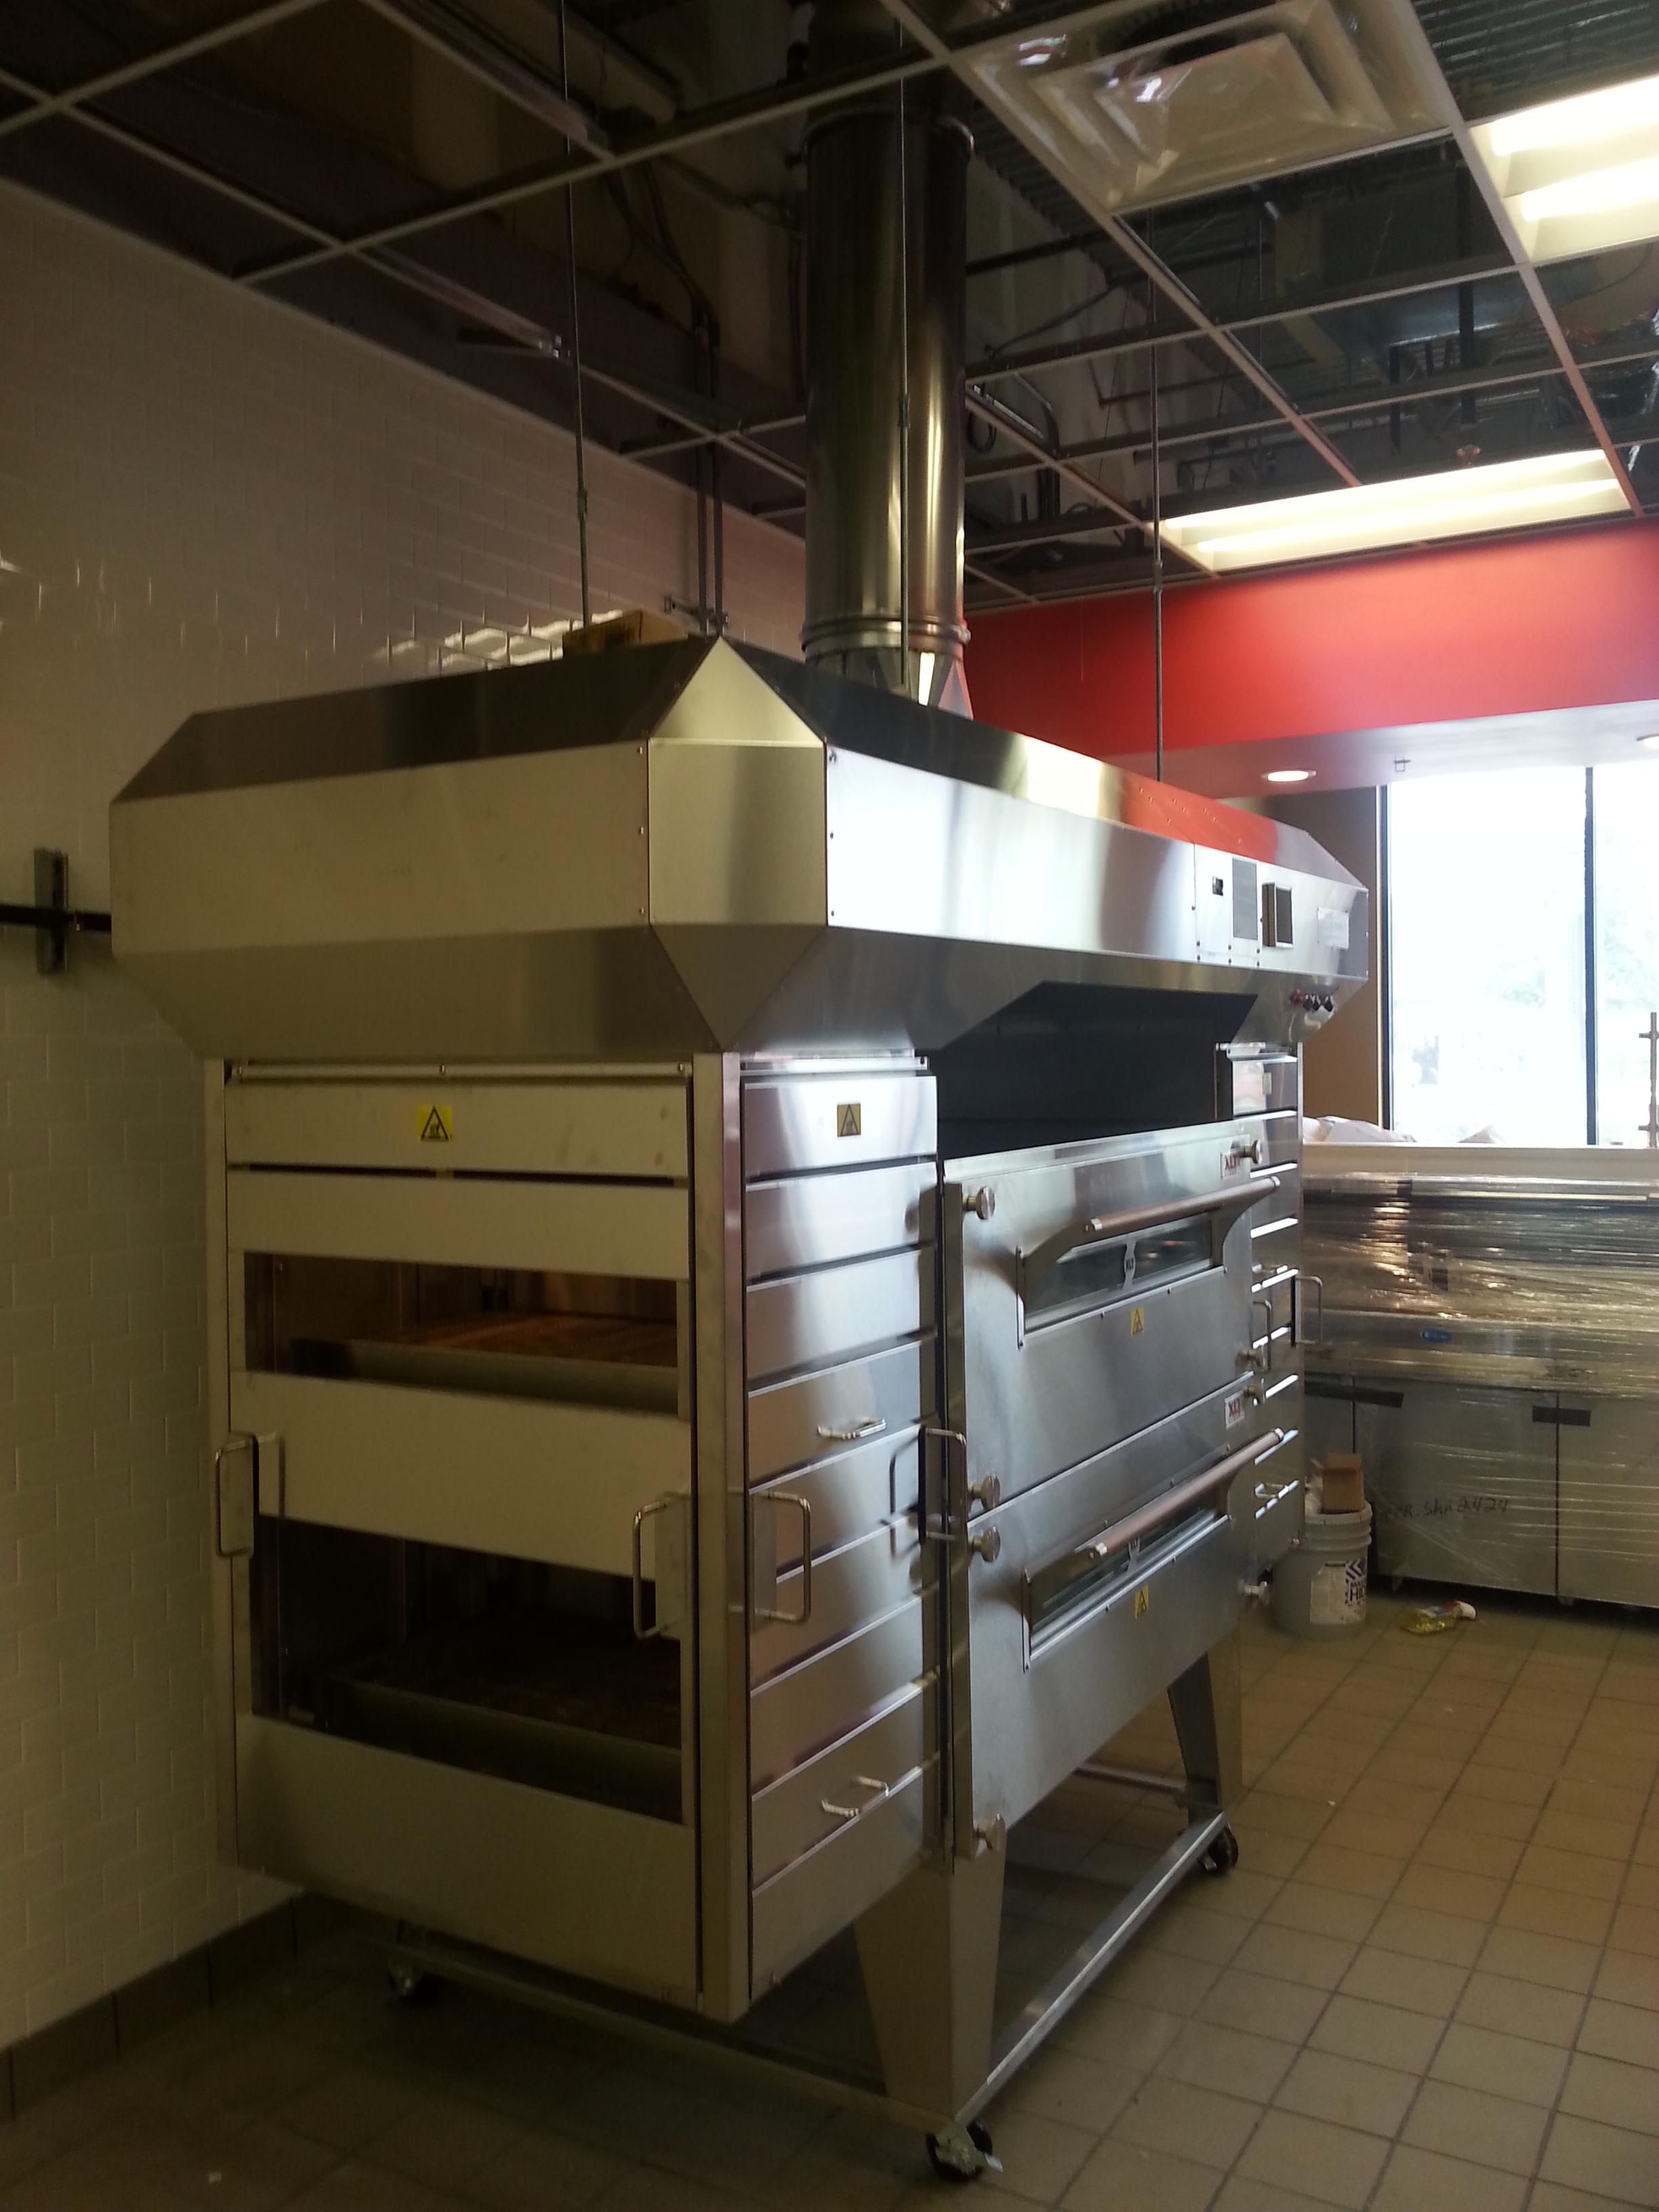 Dominos East Orlando - New Exhaust Hood and Ovens